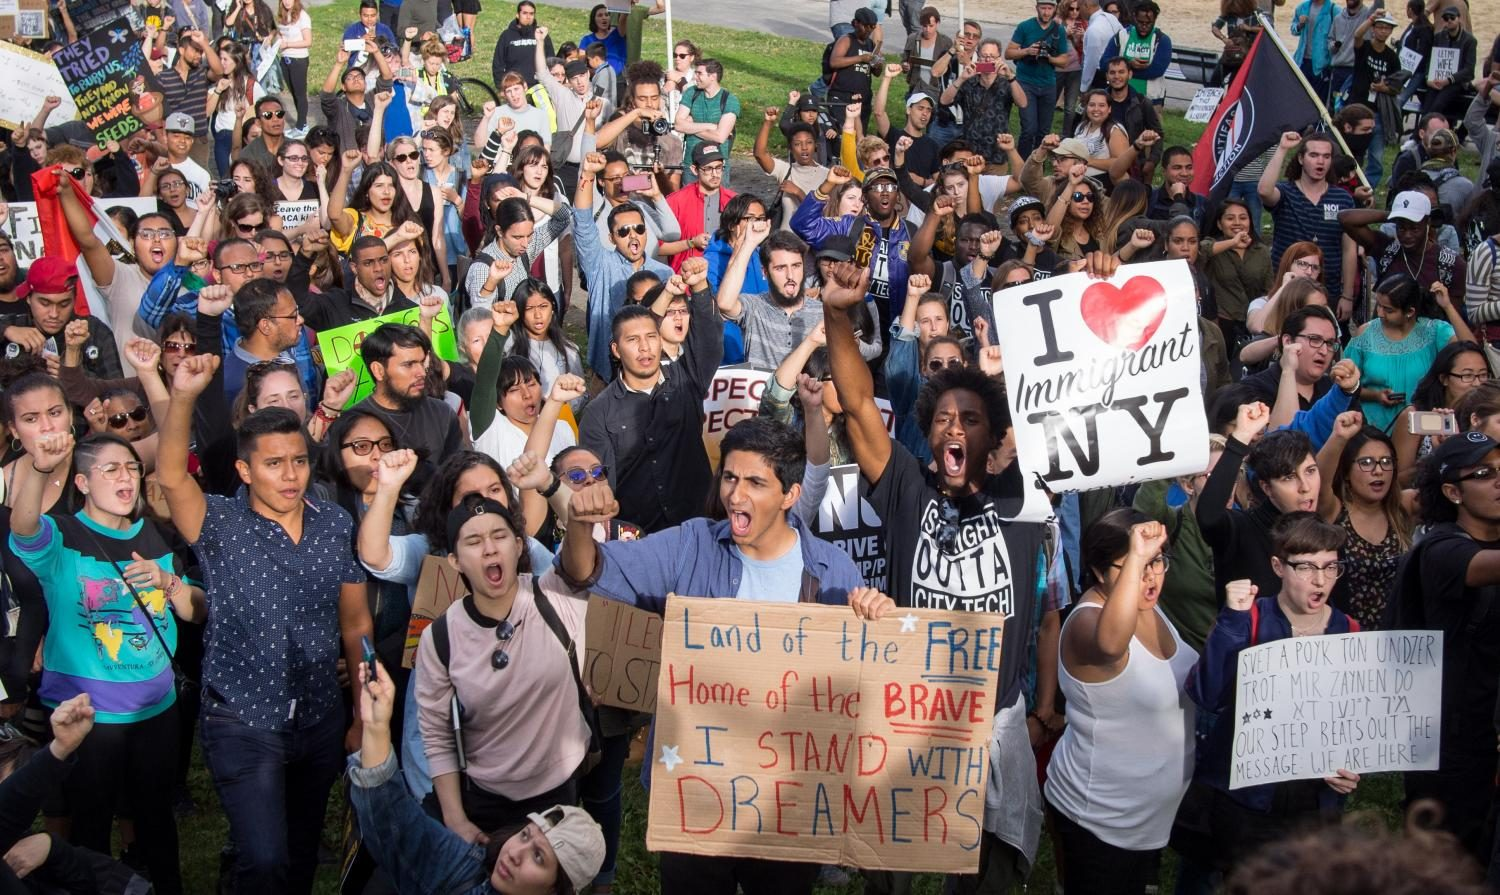 Protests+to+defend+DACA+have+been+widespread.+This+image+was+captured+in+Columbus+Circle.